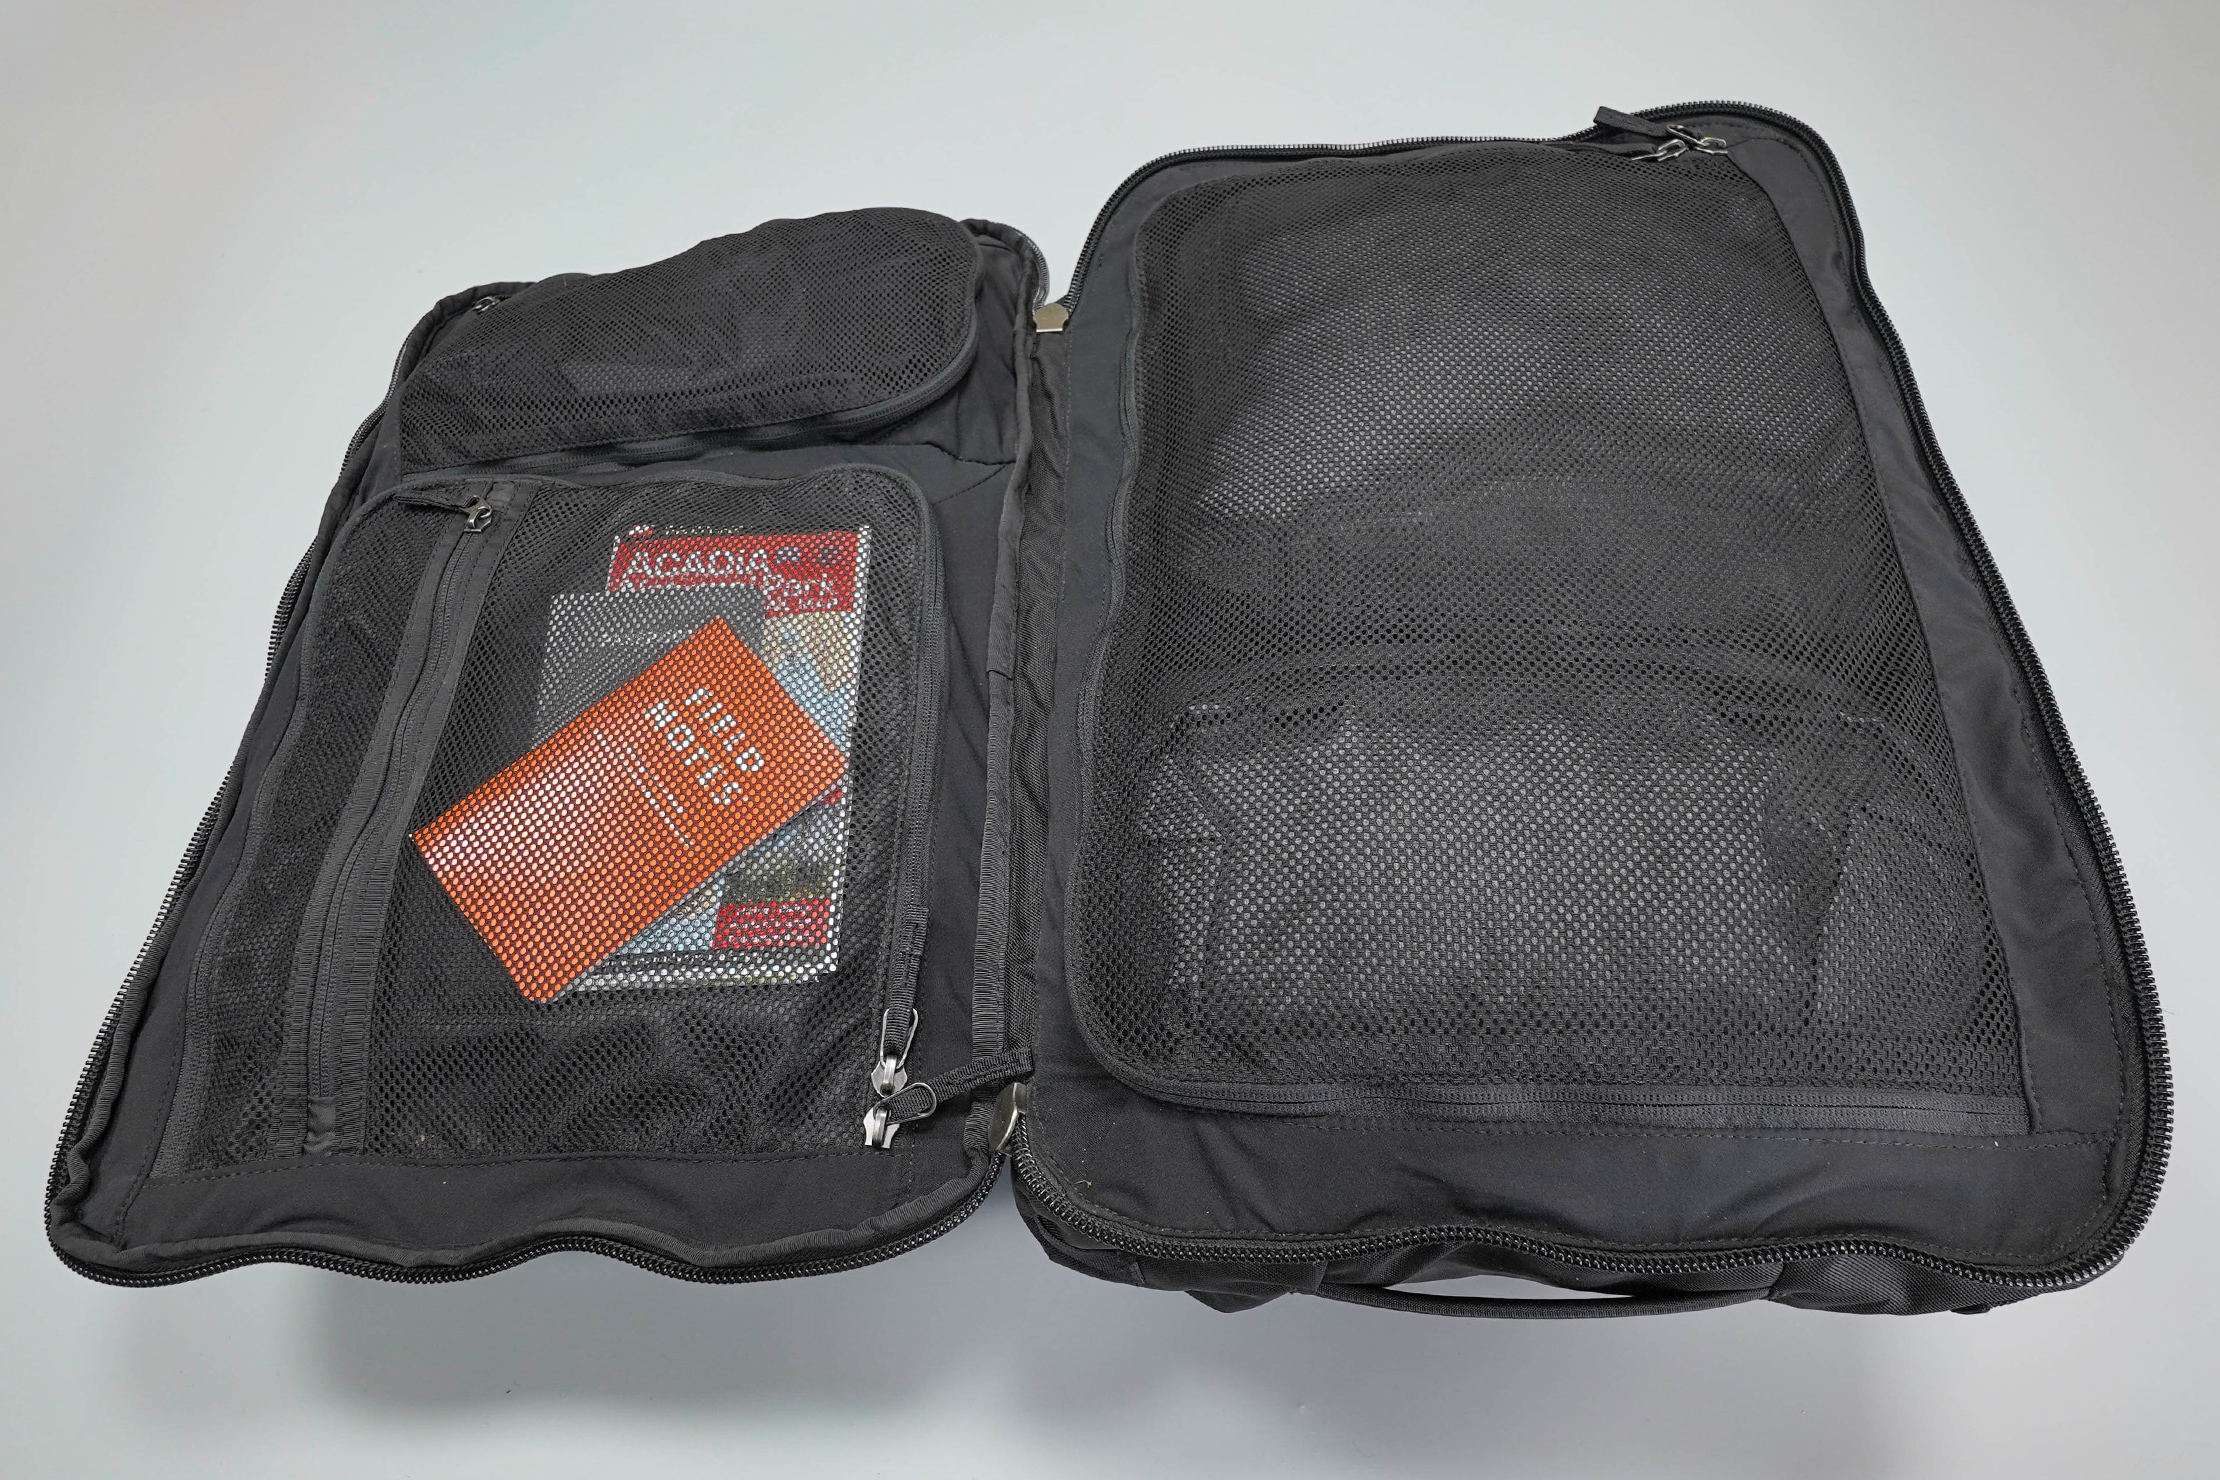 Cotopaxi Allpa 42L Main Compartment Clamshell Opening